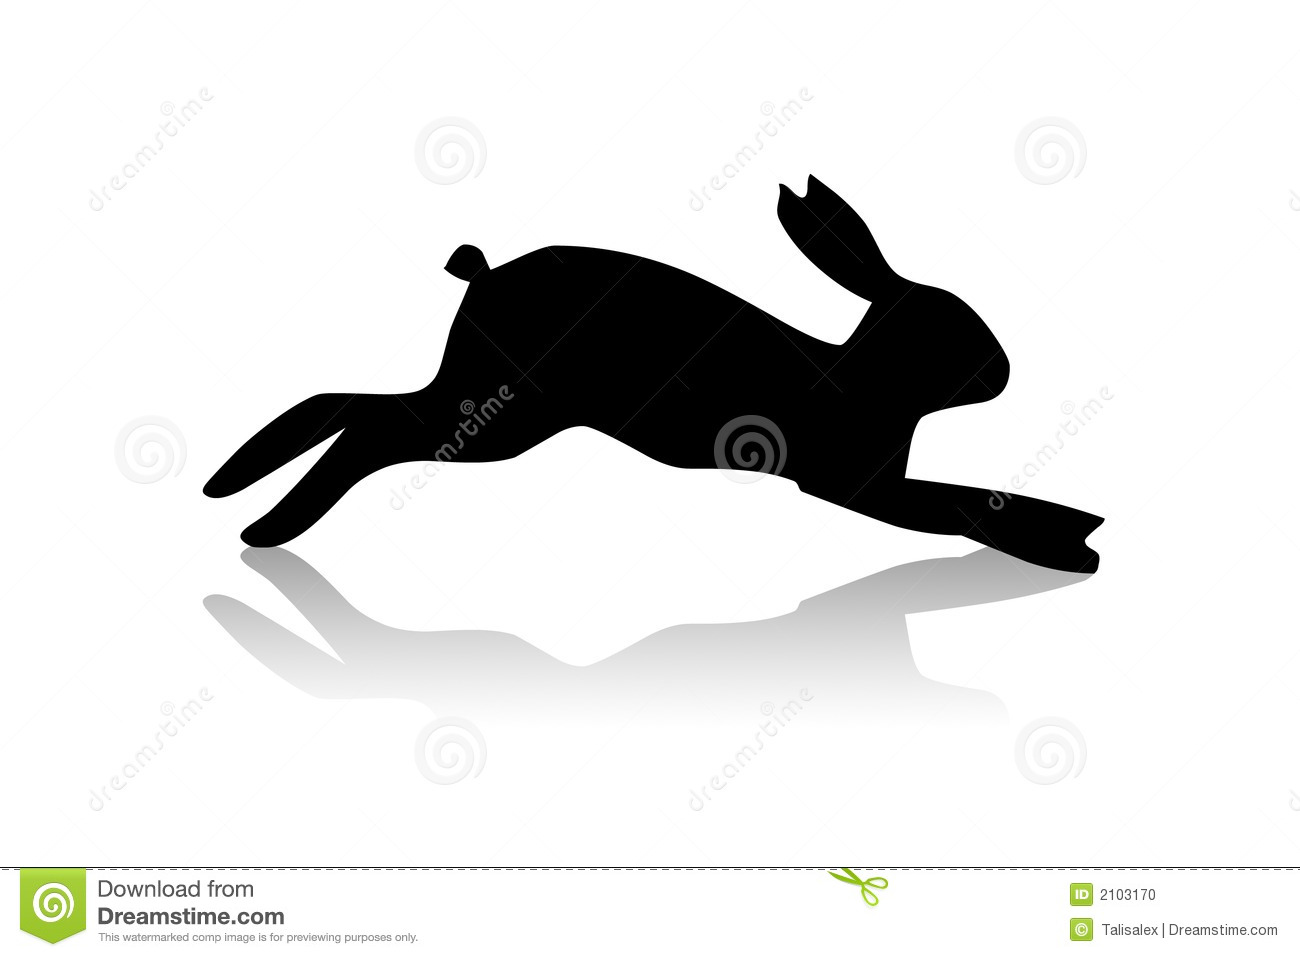 Black Hare Illustration Stock Photo - Image: 2103170